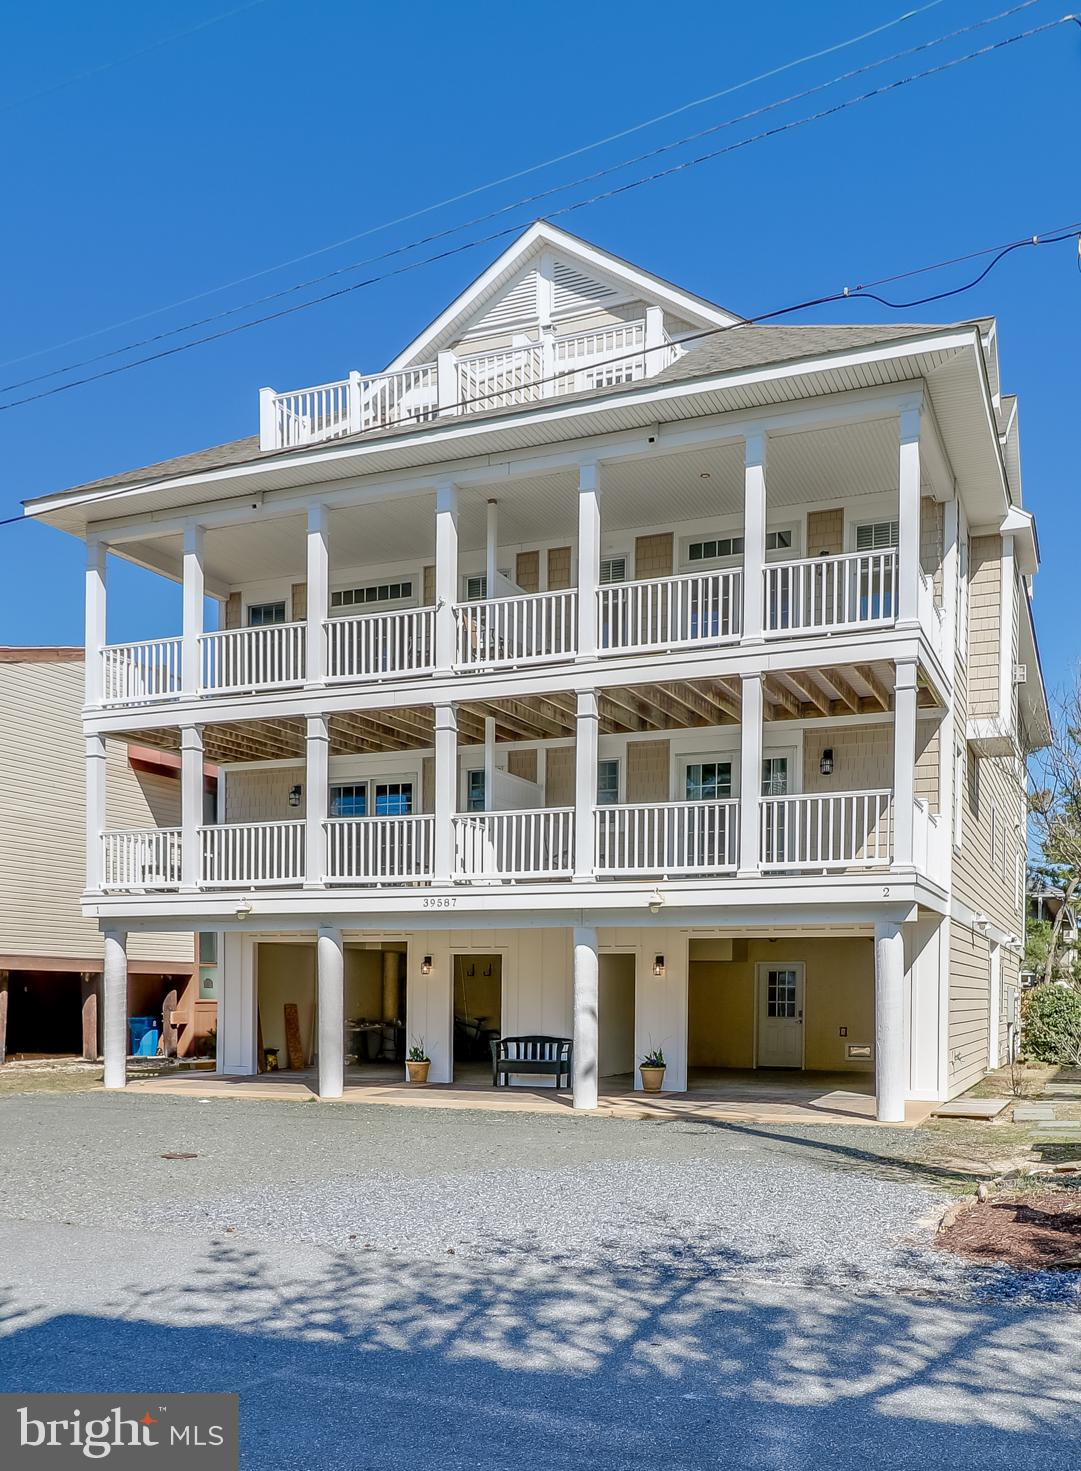 Welcome to your beach house in Tower Shores! Just steps to the beach, this east-facing duplex is fully furnished, turnkey, and ready for you. There is plenty of room for the entire family, with 4 bedrooms, 3.5 bathrooms, and a loft—you can sleep up to 12! This custom home features 3,200 square feet of living space, with each floor providing both front and back deck space which totals over 800 square feet. Details such as hardwood floors, Andersen windows, and many beautiful finishings make this house truly a home. The first floor features an entryway with closet/storage space as well as a separate closet built out and ready for a future elevator. The second floor features three bedrooms (complete with seven beds), two bathrooms, and a laundry room. As you reach the third floor, you will discover the inverted floor plan with an open and beautiful living room, dining room, and kitchen. Kitchen highlights include stainless steel appliances, granite countertops, an undermount sink, and a breakfast bar. The living room boasts a gas fireplace and looks out onto the balcony, offering views of the ocean and the bay. The fourth floor features the second owner's suite and a loft. Moreover, the en suite bathroom on this floor features a double sink and a soaking tub. This property is currently being utilized as a rental and has already been rented throughout Summer 2021. Schedule your tour of this beautiful property today!  Check out the floor plans and Matterport tour https://my.matterport.com/show/?m=e7eHVUZTdsu